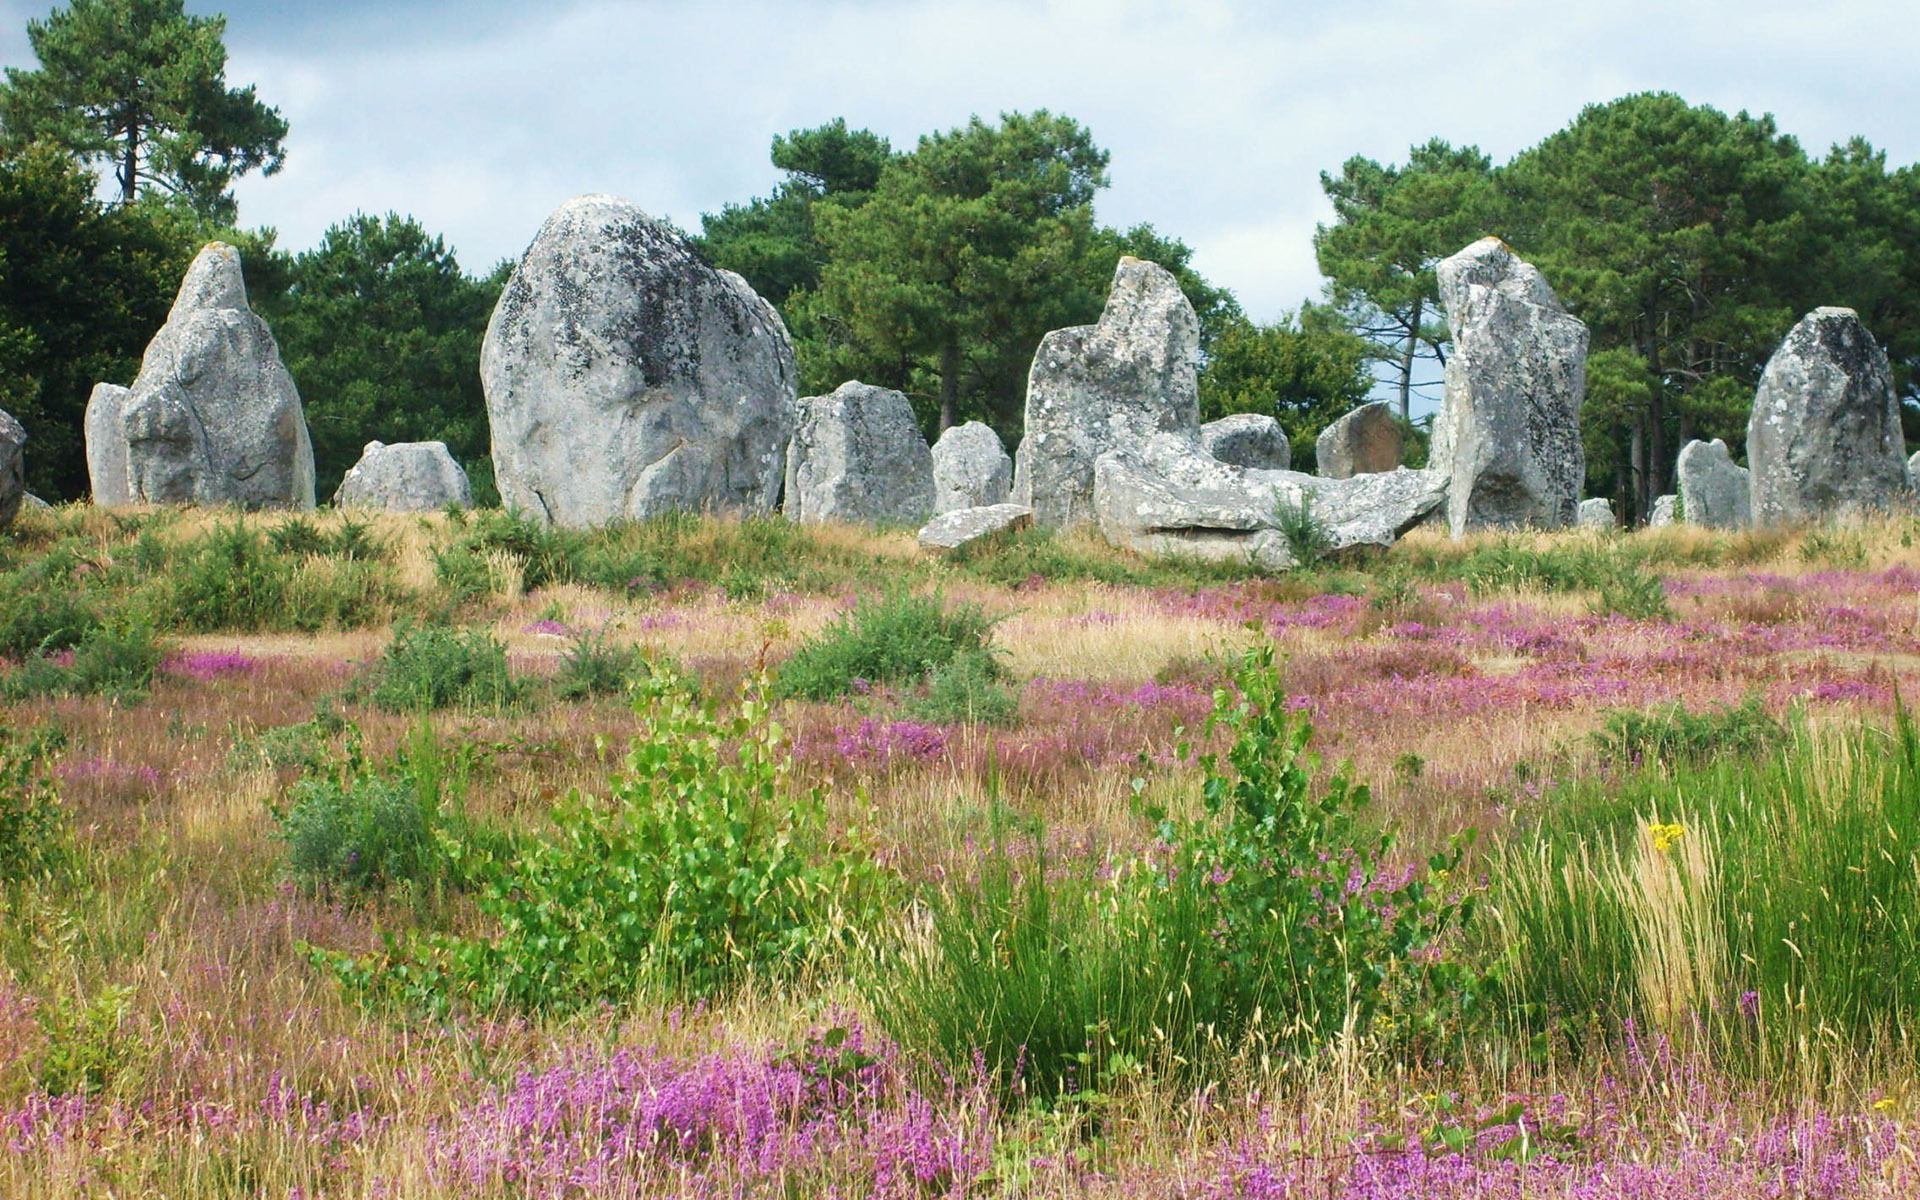 stones-in-the-grass-hd-wallpaper